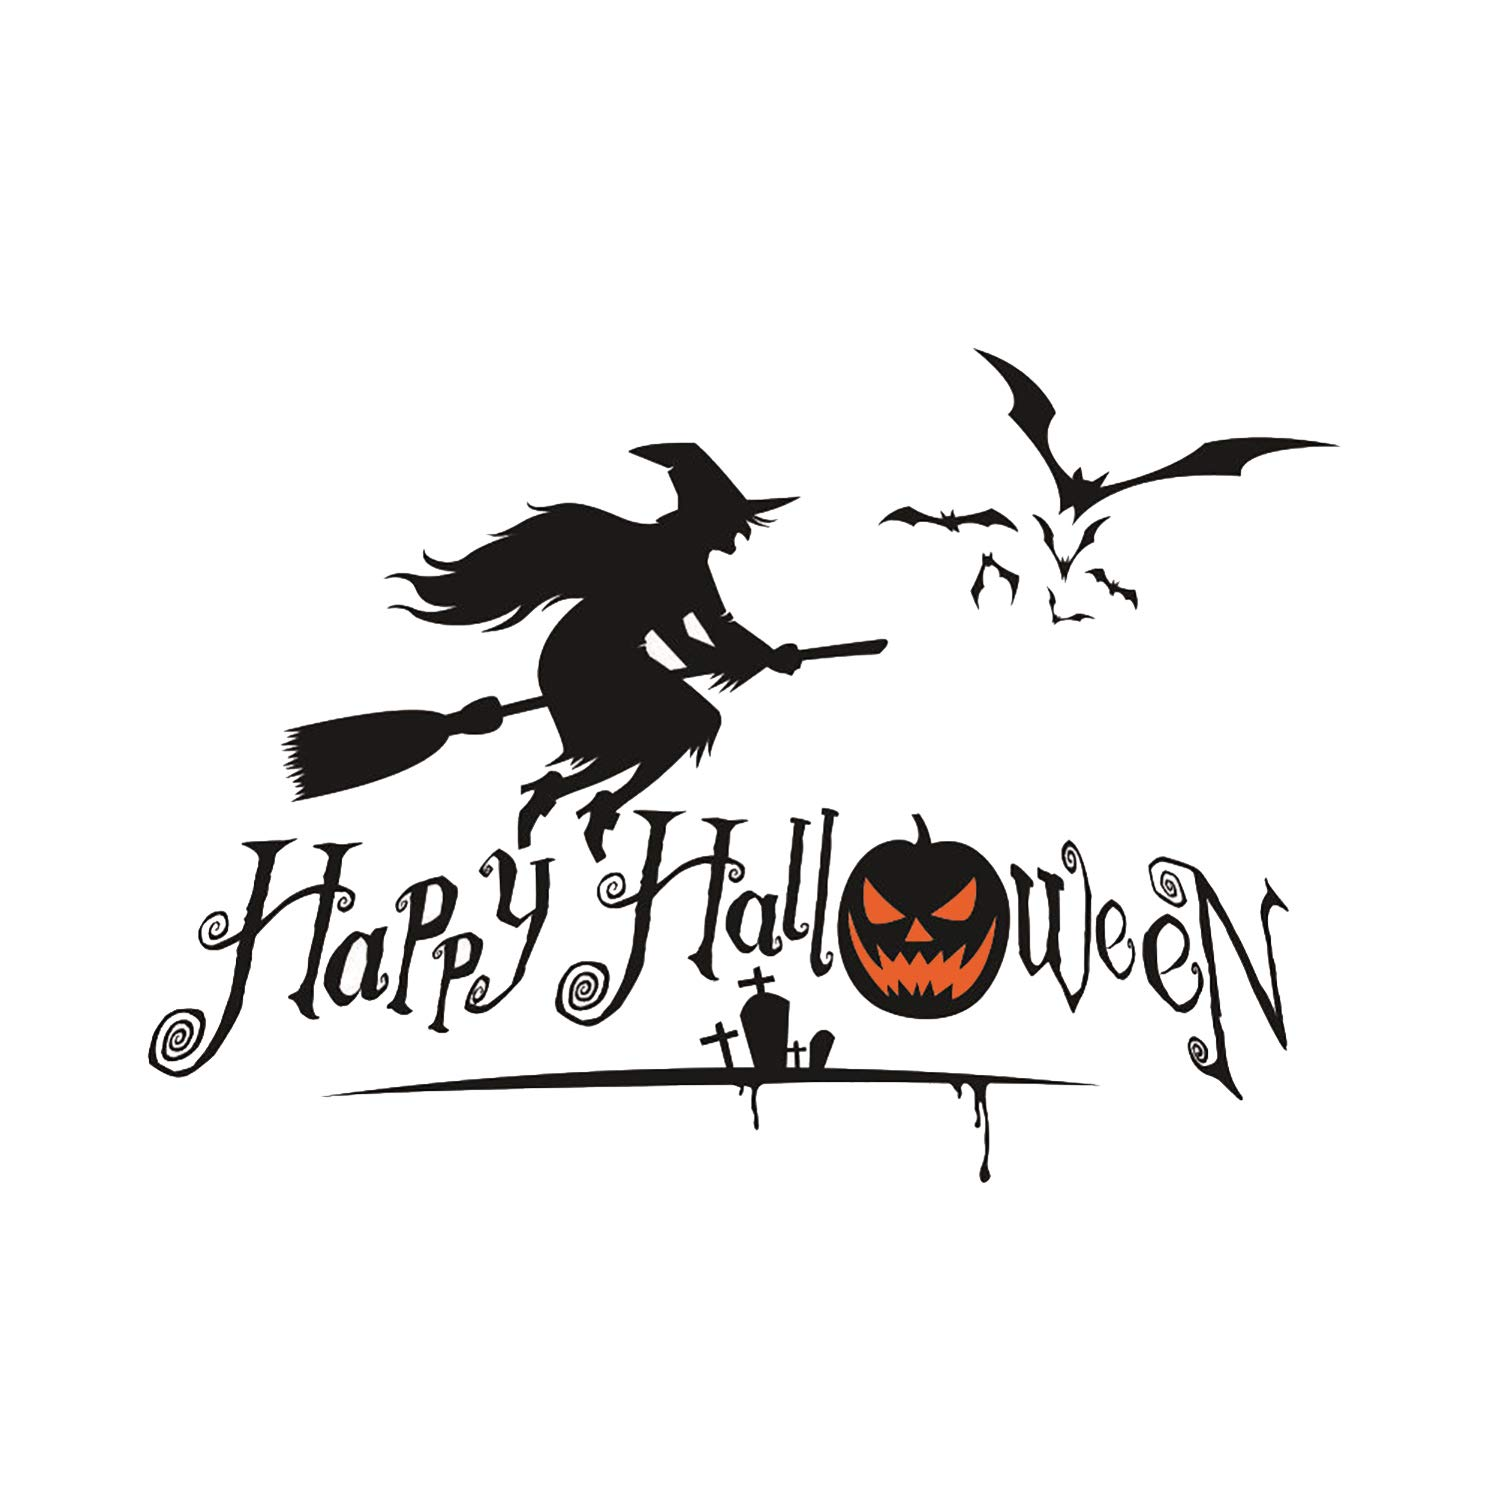 Topgalaxy.Z 16.5'' x 21.25'' Wall Sticker Happy Halloween decor Witch Wall Decals Window Stickers Halloween Decorations for Kids Rooms wall decoration halloween